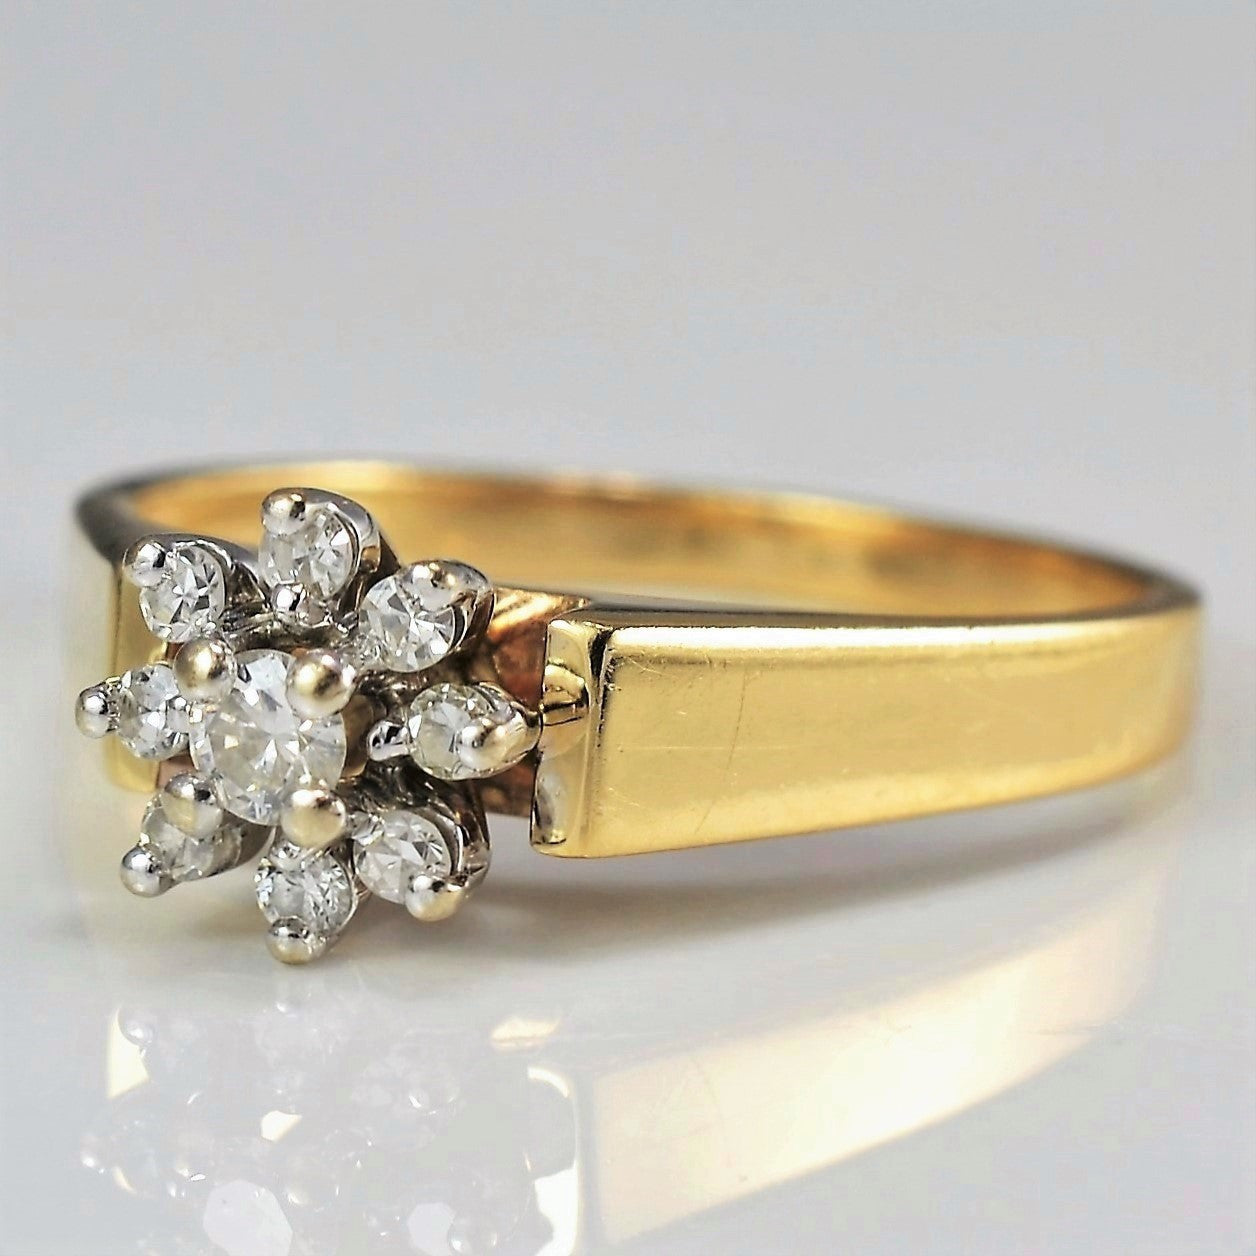 Floral Diamond Cluster Ring | 0.13 ctw, SZ 6.25 |